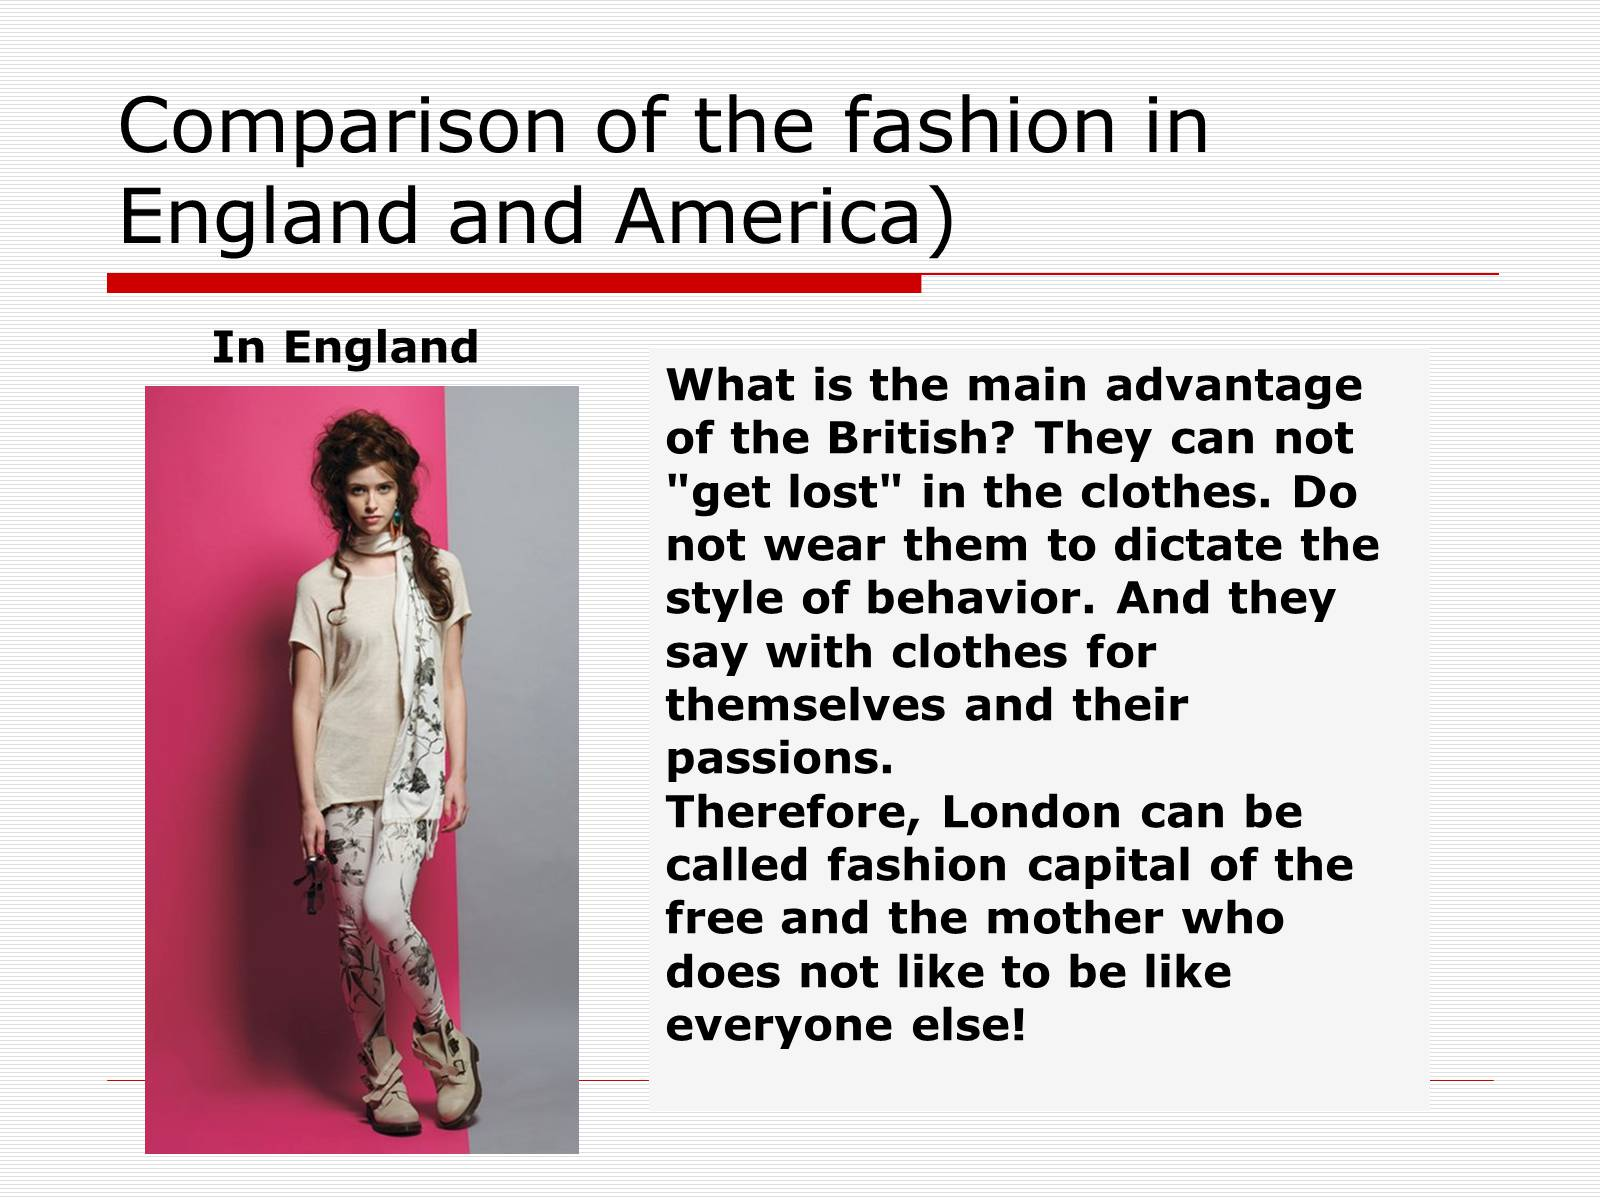 Презентація на тему «Comparison of the fashion in England and America» - Слайд #27